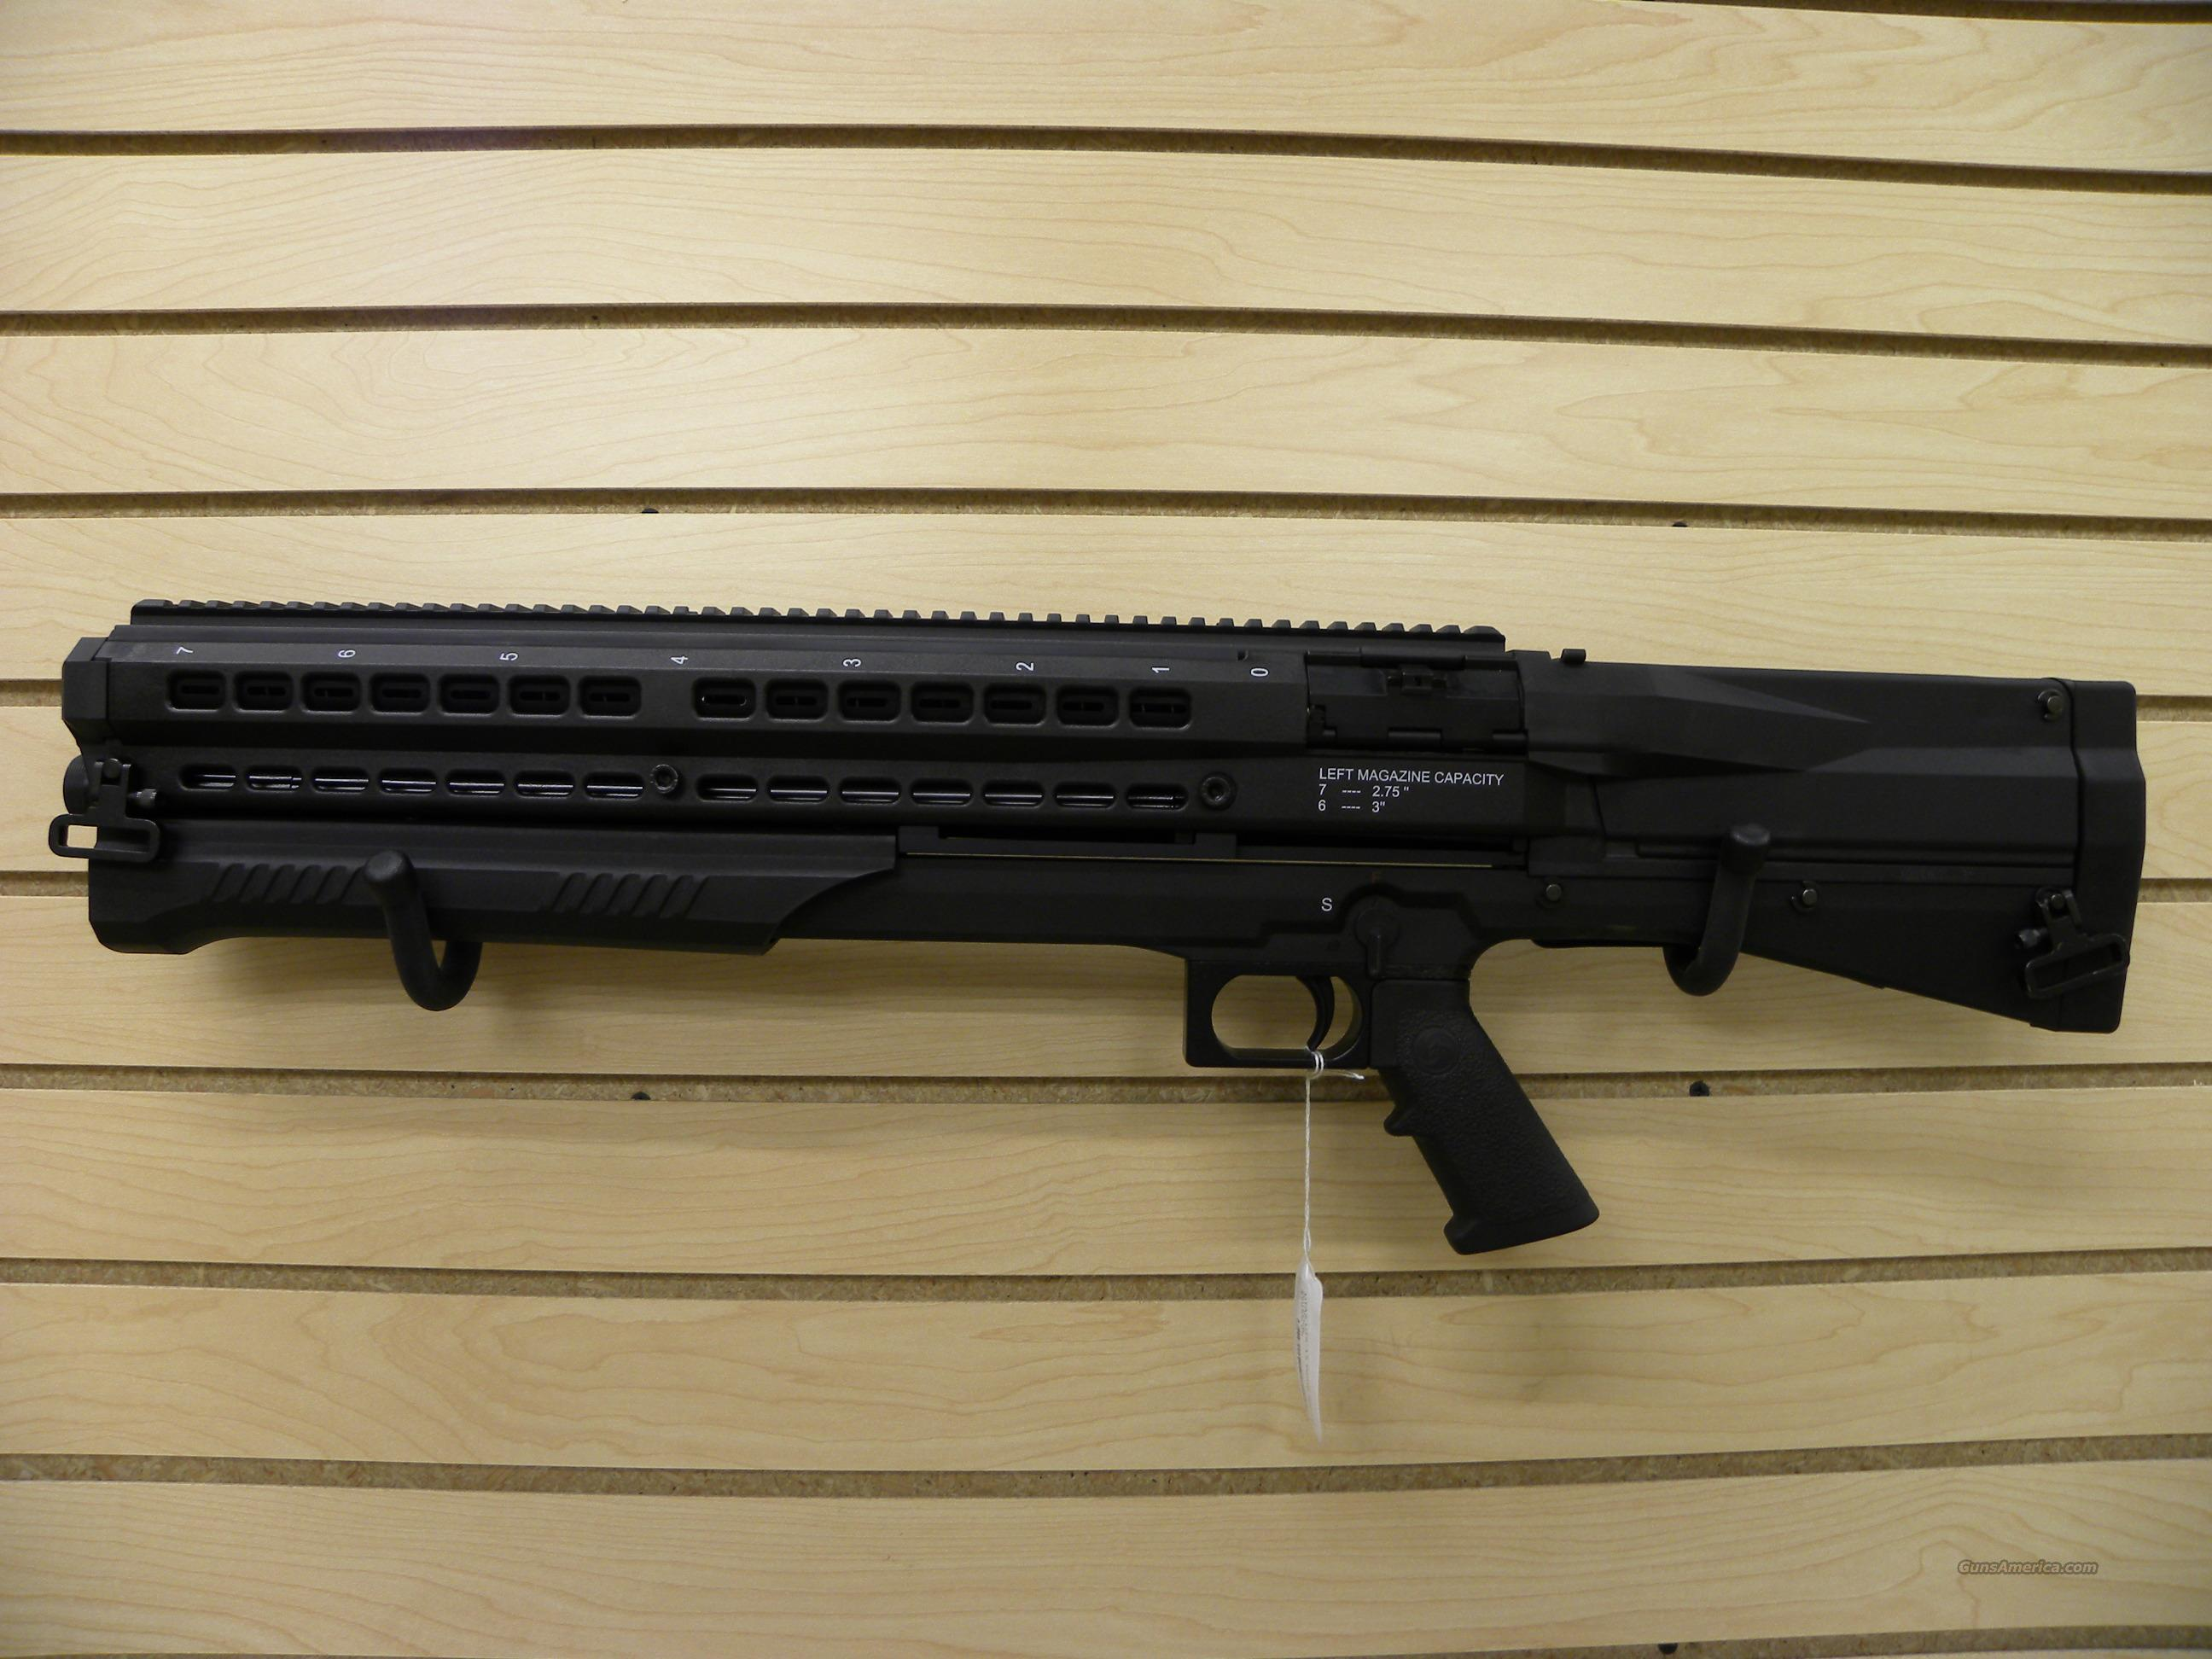 UTAS UTS-15 12ga Shotgun 14+1 capacity Black  Guns > Shotguns > UTAS Shotguns